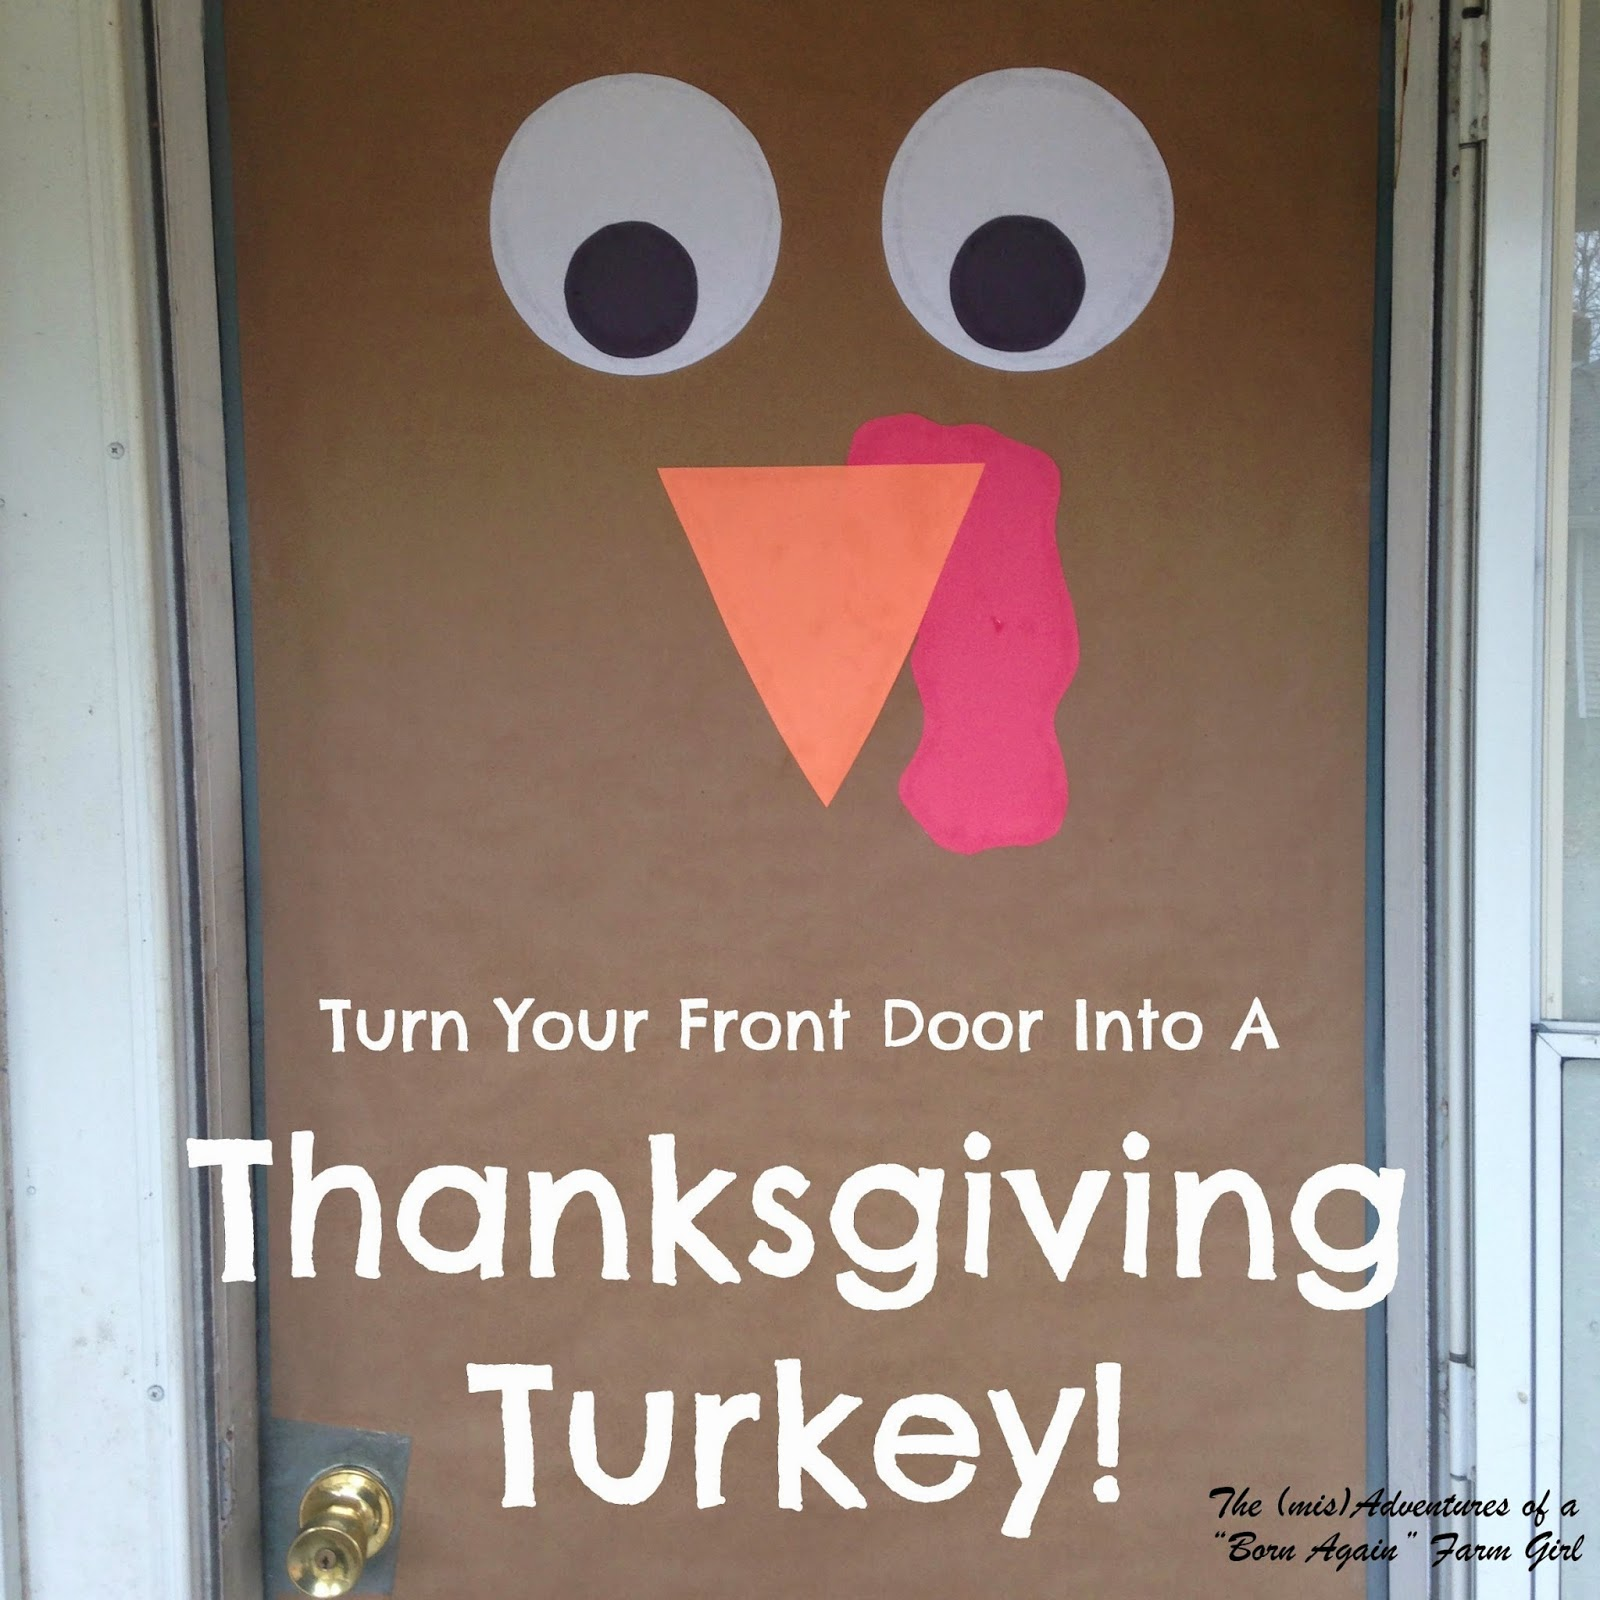 Thanksgiving turkey decor - Turn Your Front Door Into A Thanksgiving Turkey